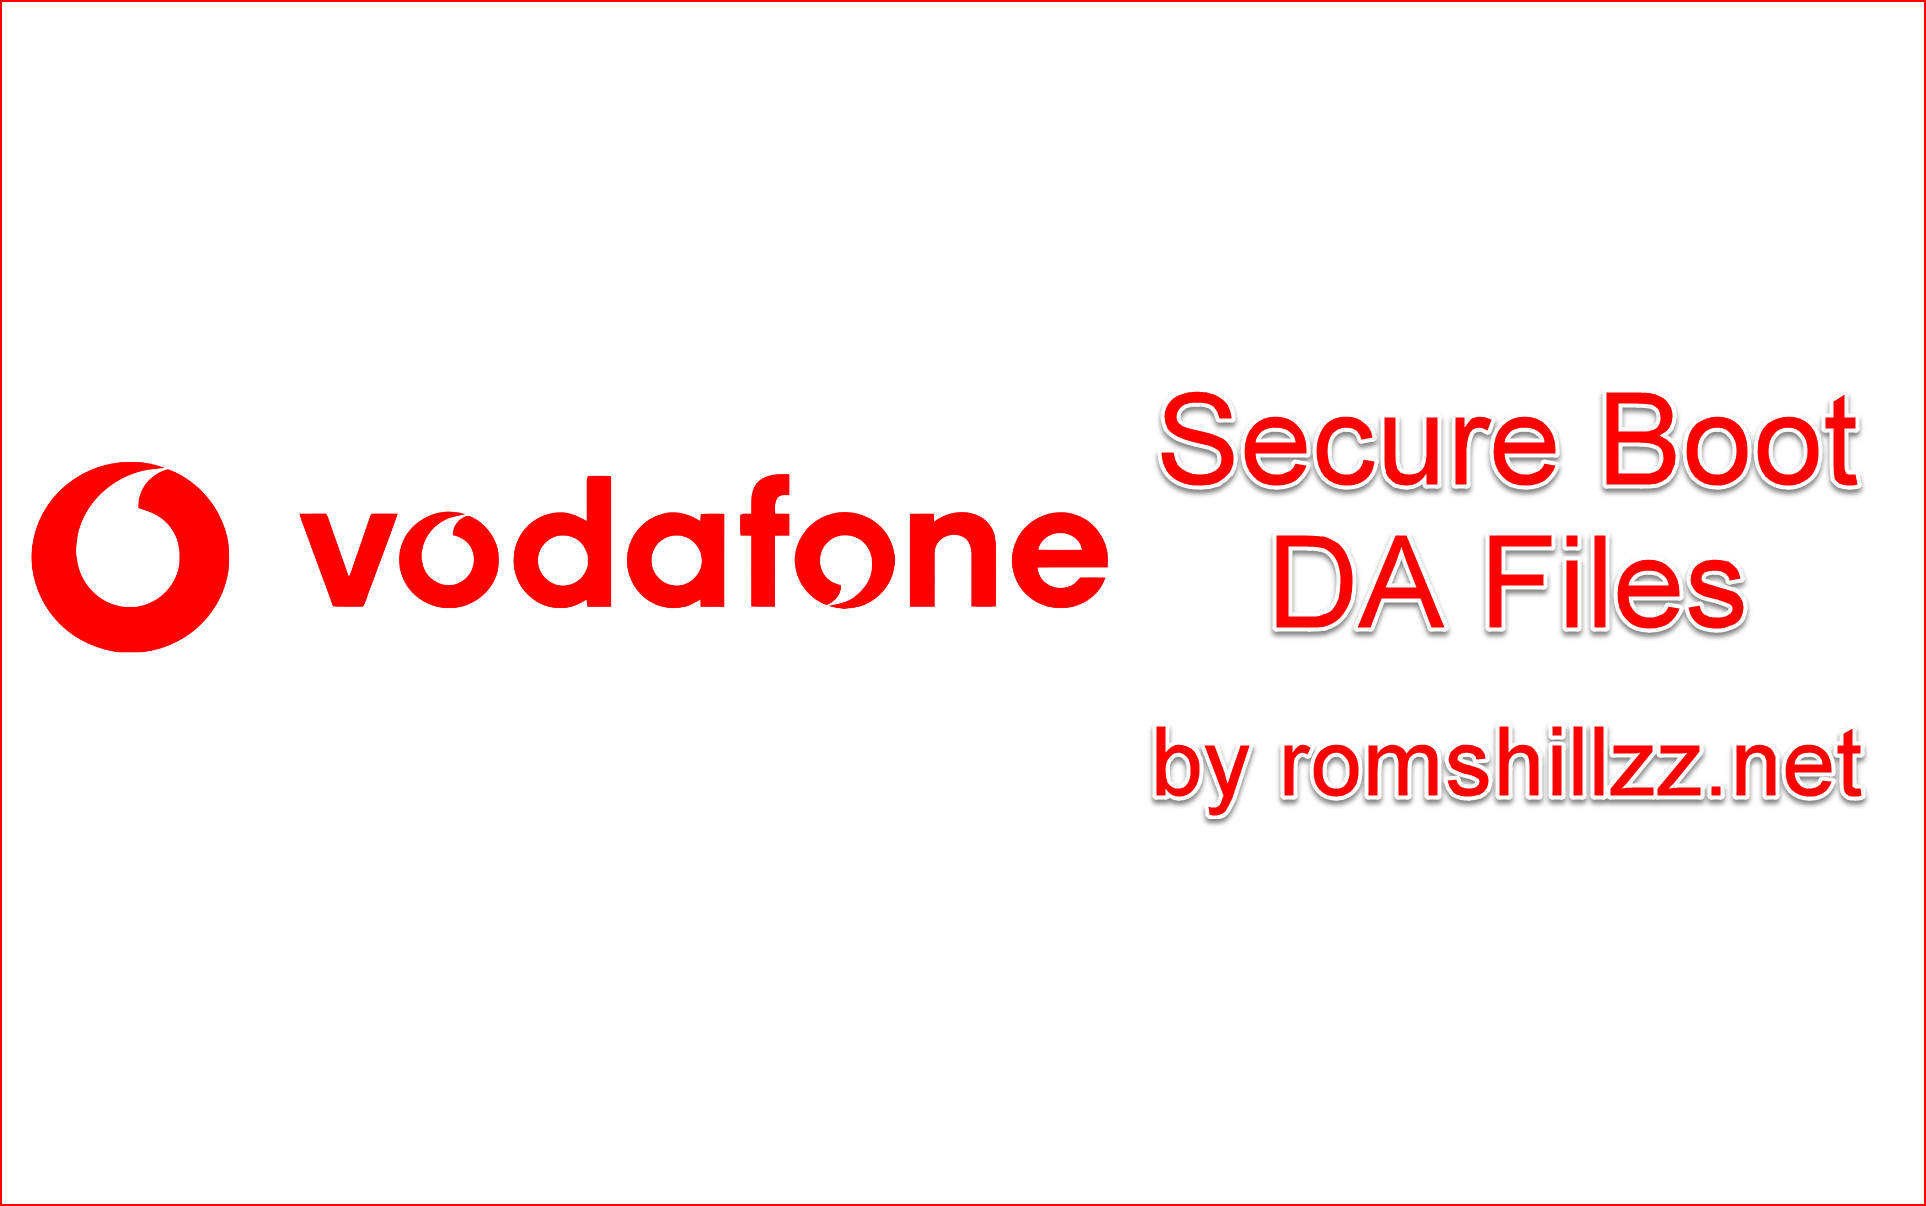 vodafone-secure-boot.png